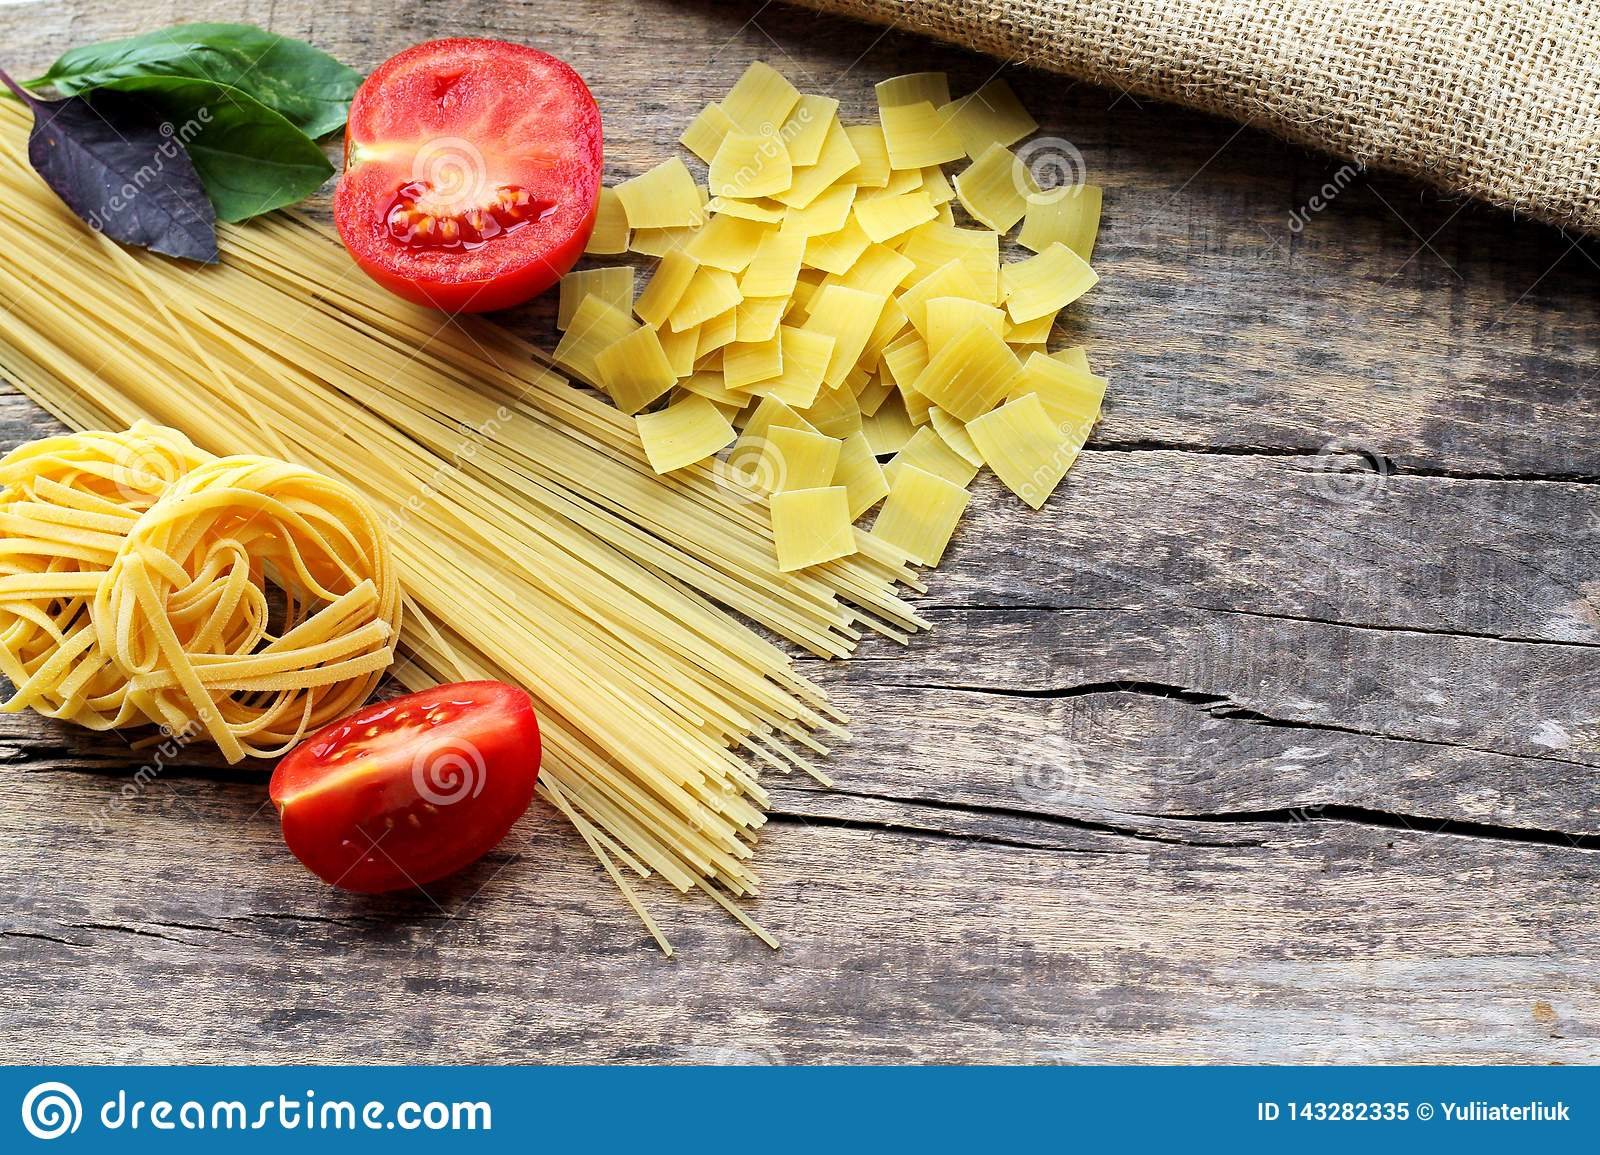 Three different types of pasta with fresh purple and green basil and red tomatoes on a wooden background with a place for text